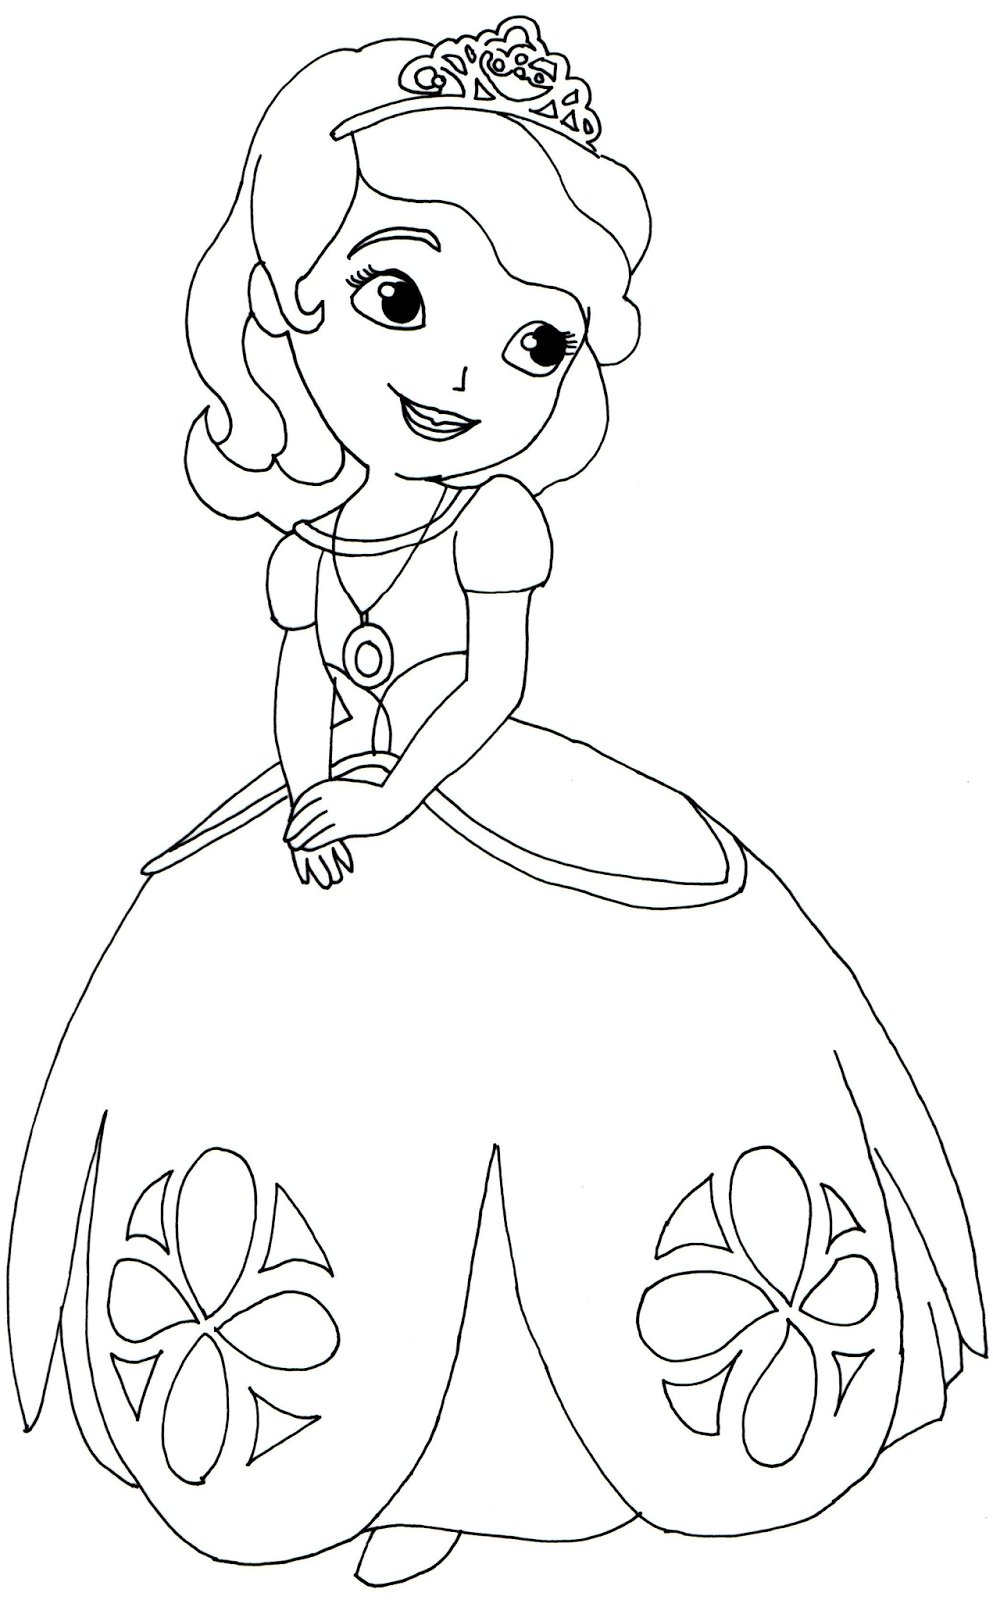 Sofia the first coloring pages to print for Sofia the princess coloring pages